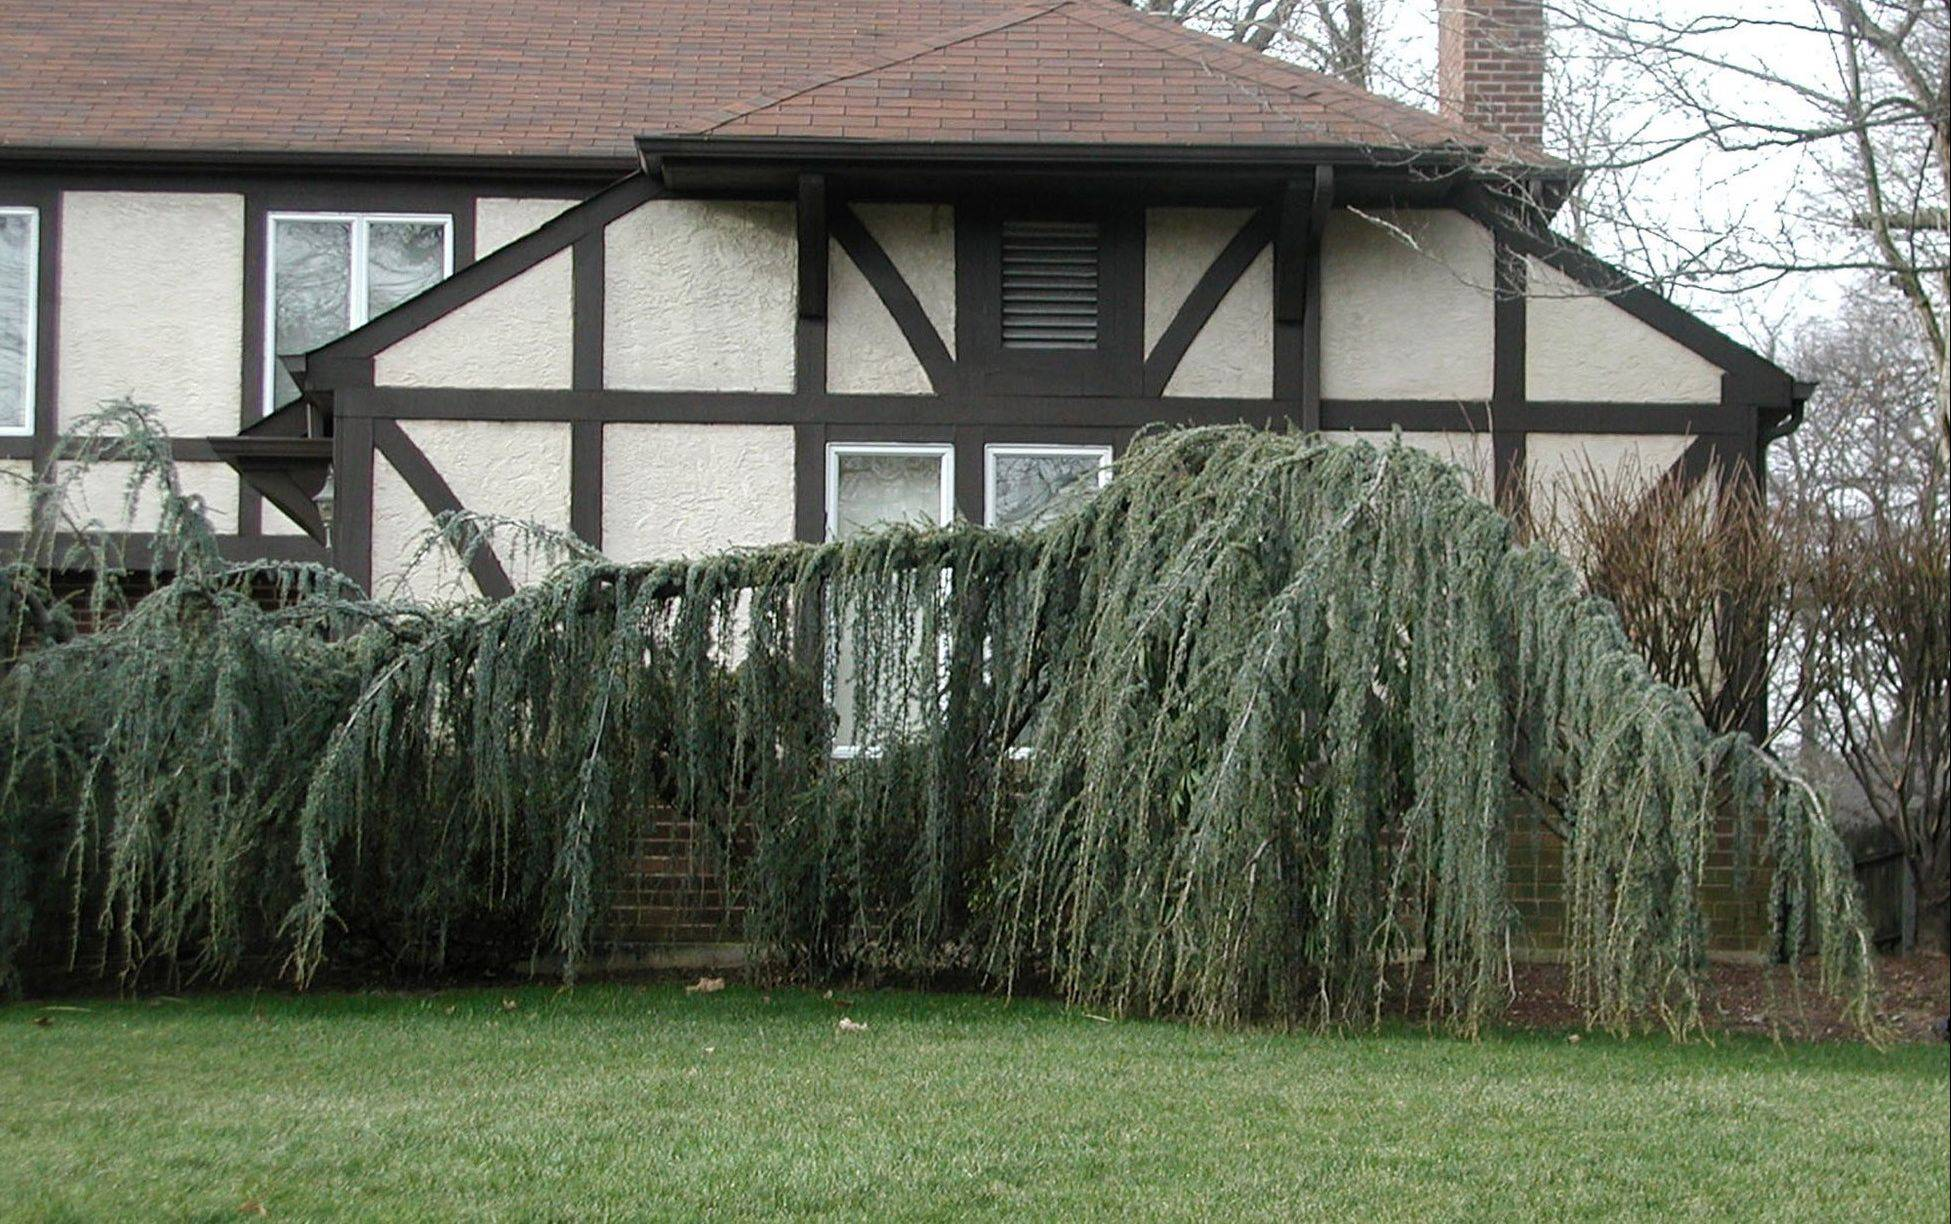 Weeping Willows create a groundcover with the branches that will never be higher than a few feet above the ground.